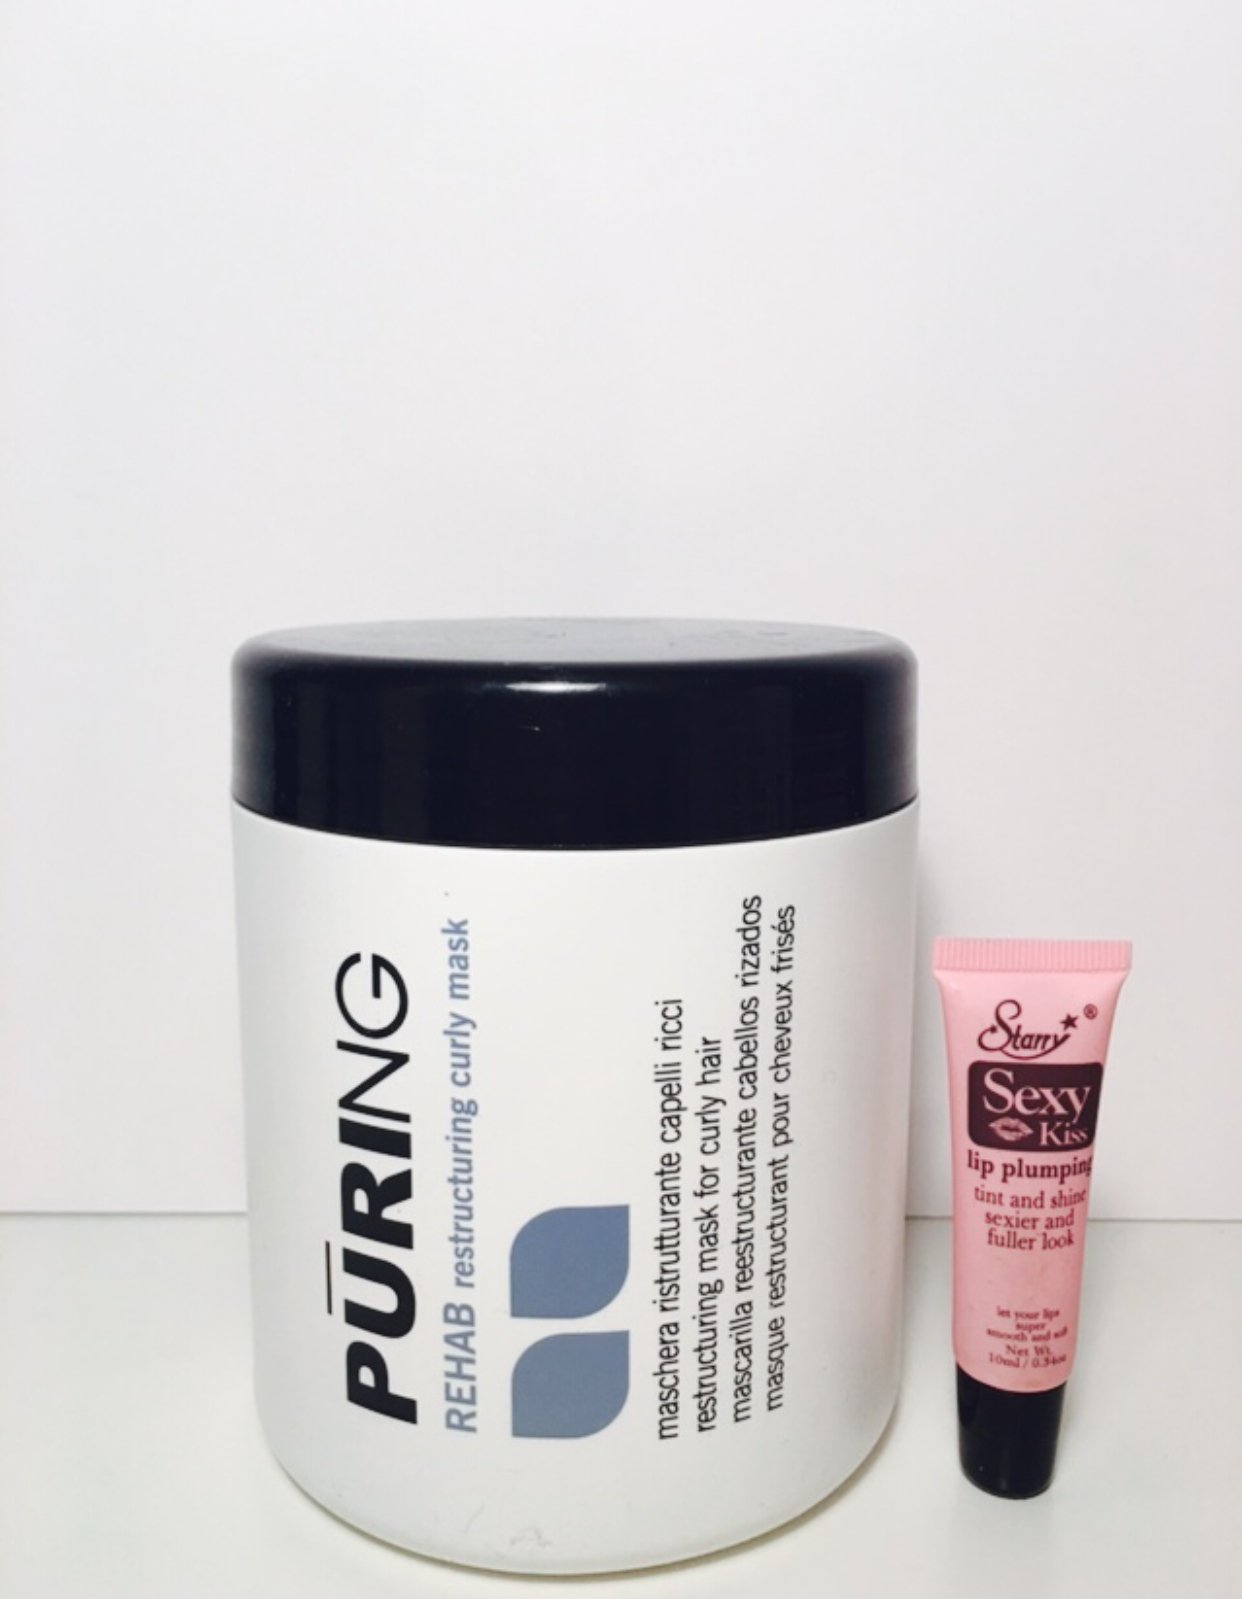 Maxima MX Puring Rehab Restructuring Curly Mask 1000ml/33.8oz ''Free Starry Sexy Kiss Lip Plumping 10 Ml''